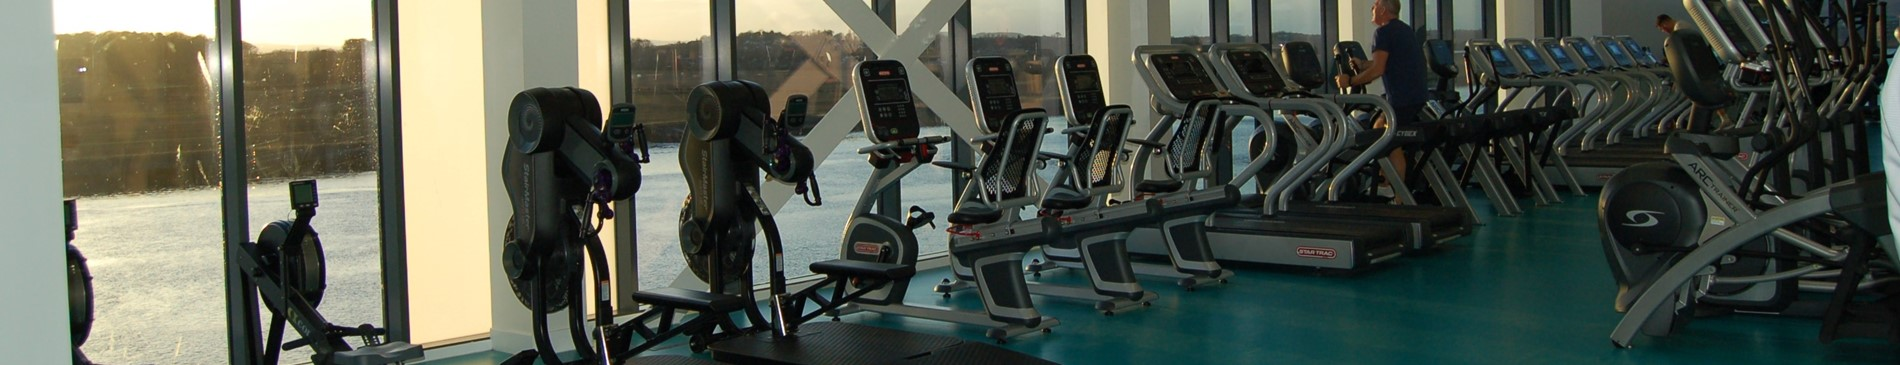 Gym equipment in the new Clydebank Gym - rowing machines, cross trainer, running machines